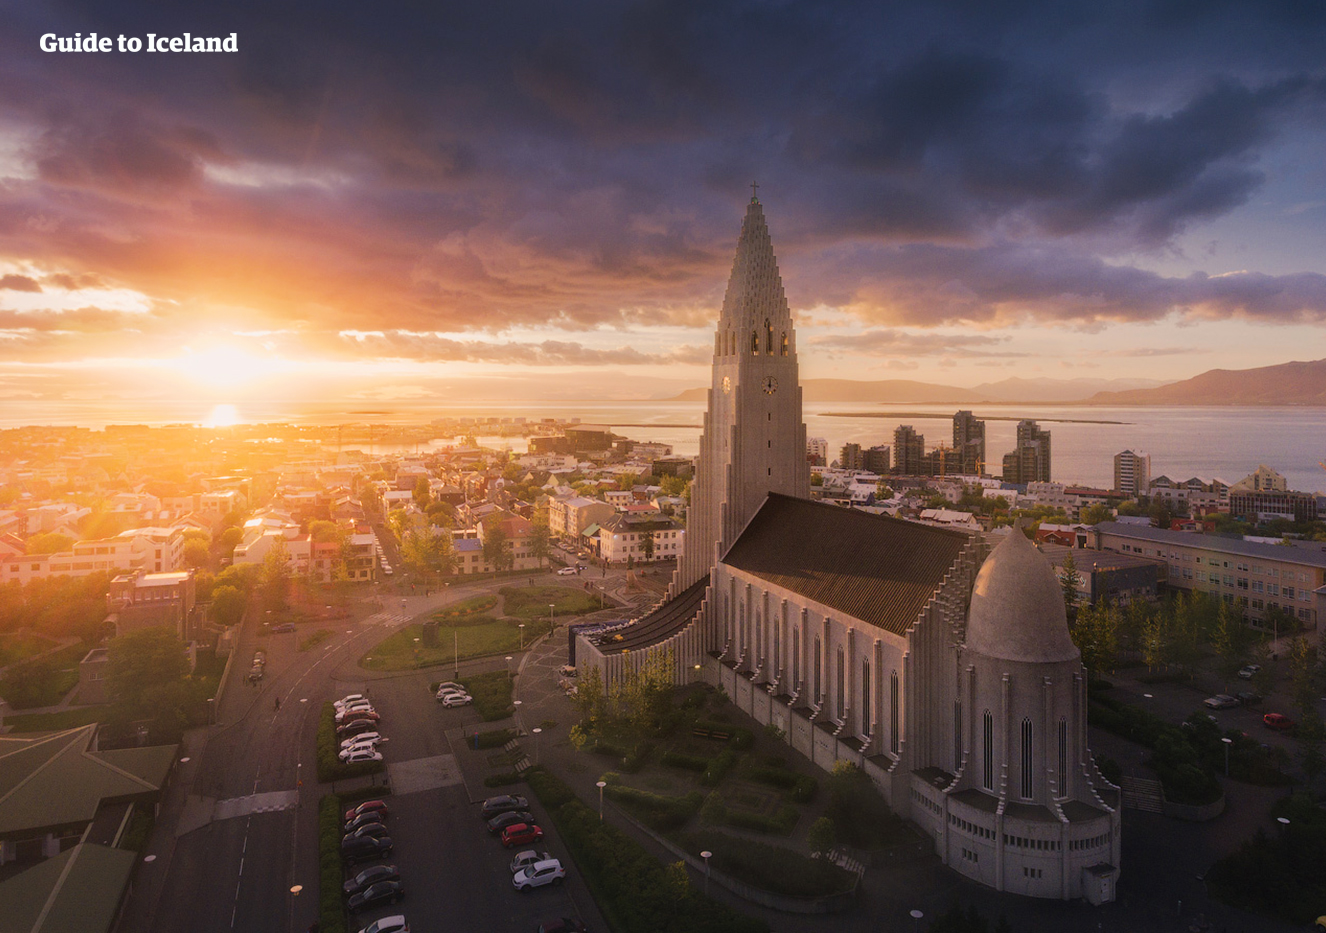 8 Day Summer Vacation Package Tour of the Best Attractions in Iceland - day 1